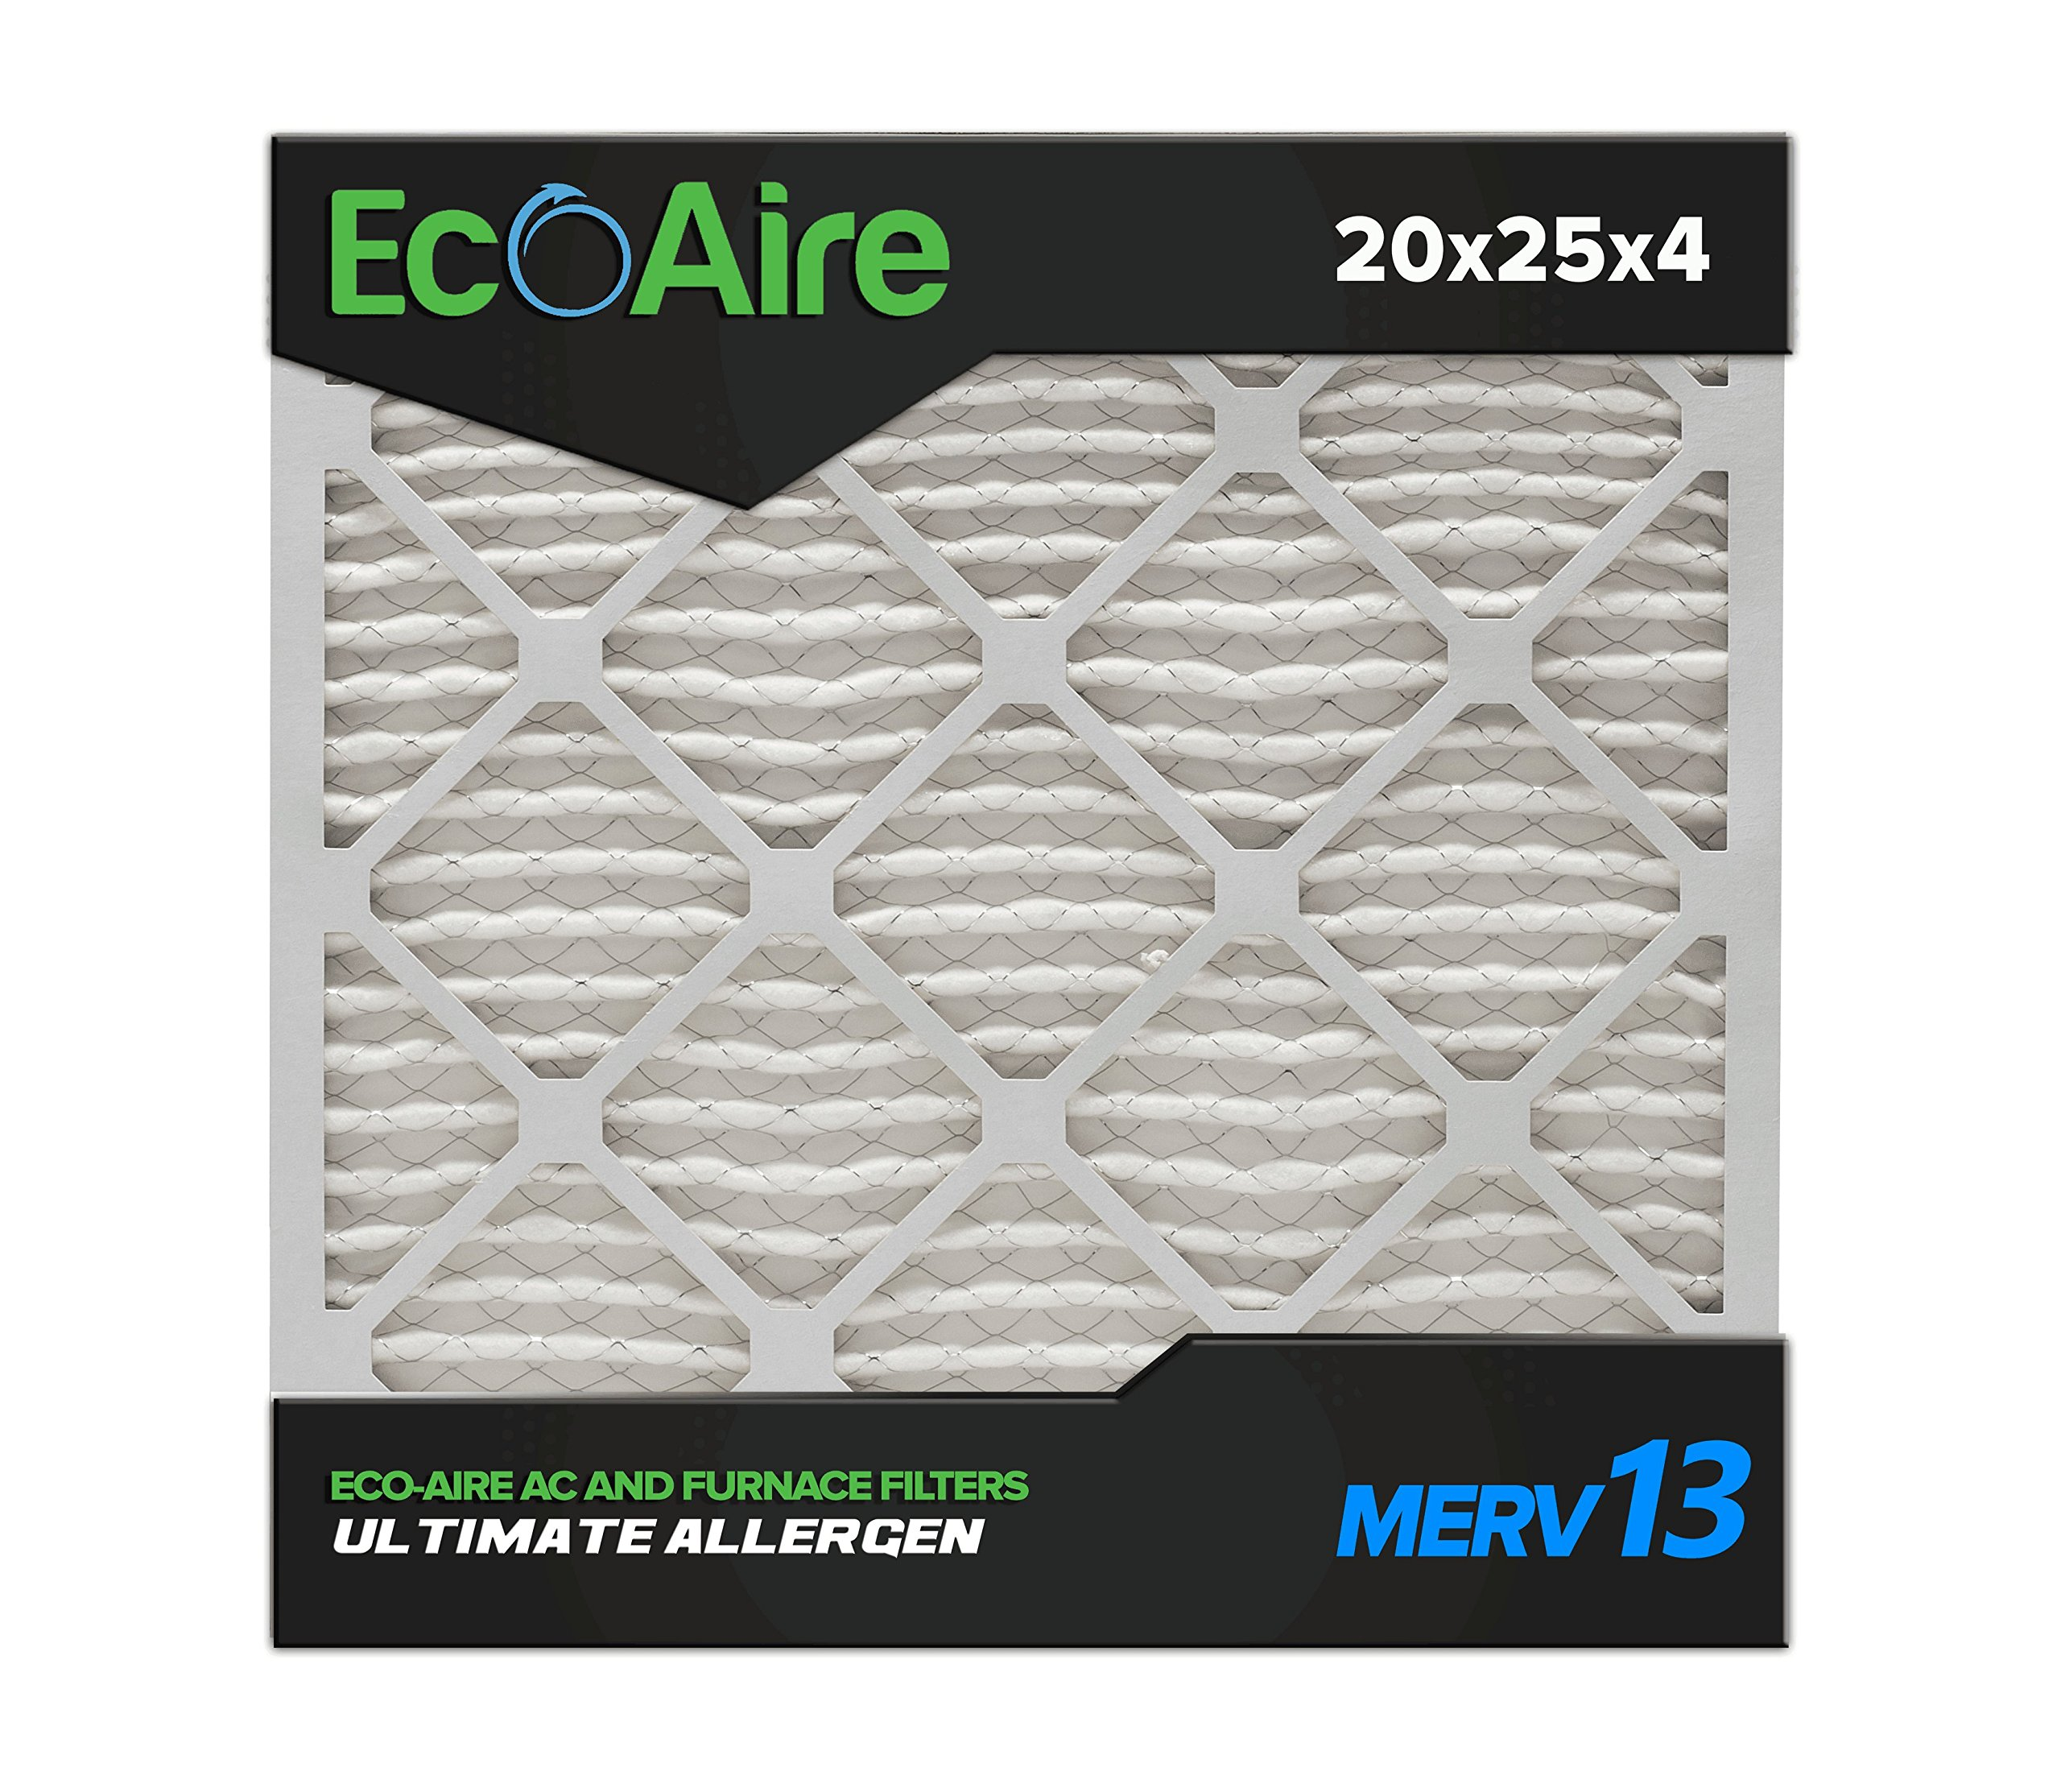 Eco-Aire 20x25x4 MERV 13, Pleated Air Filter, 20x25x4, Box of 6, Made in the USA